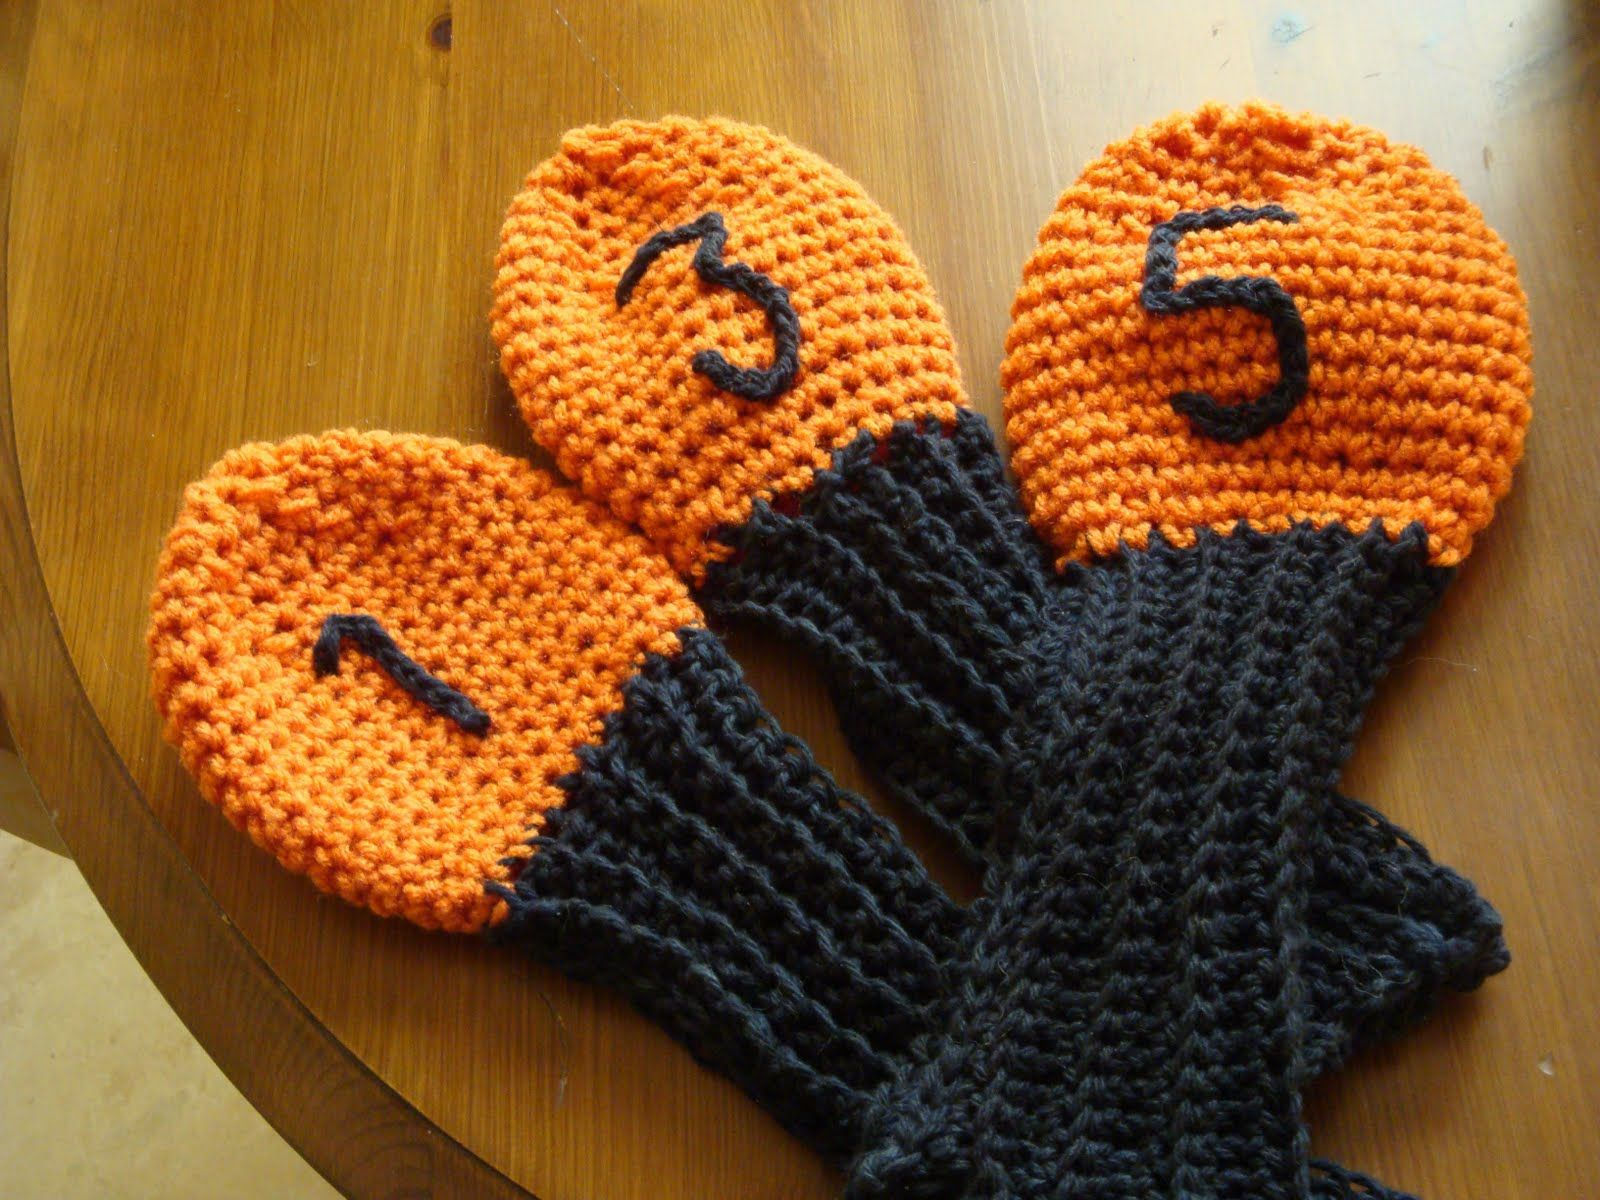 Crocheted Golf Club Covers Pattern And This Is A Bag I Made For My